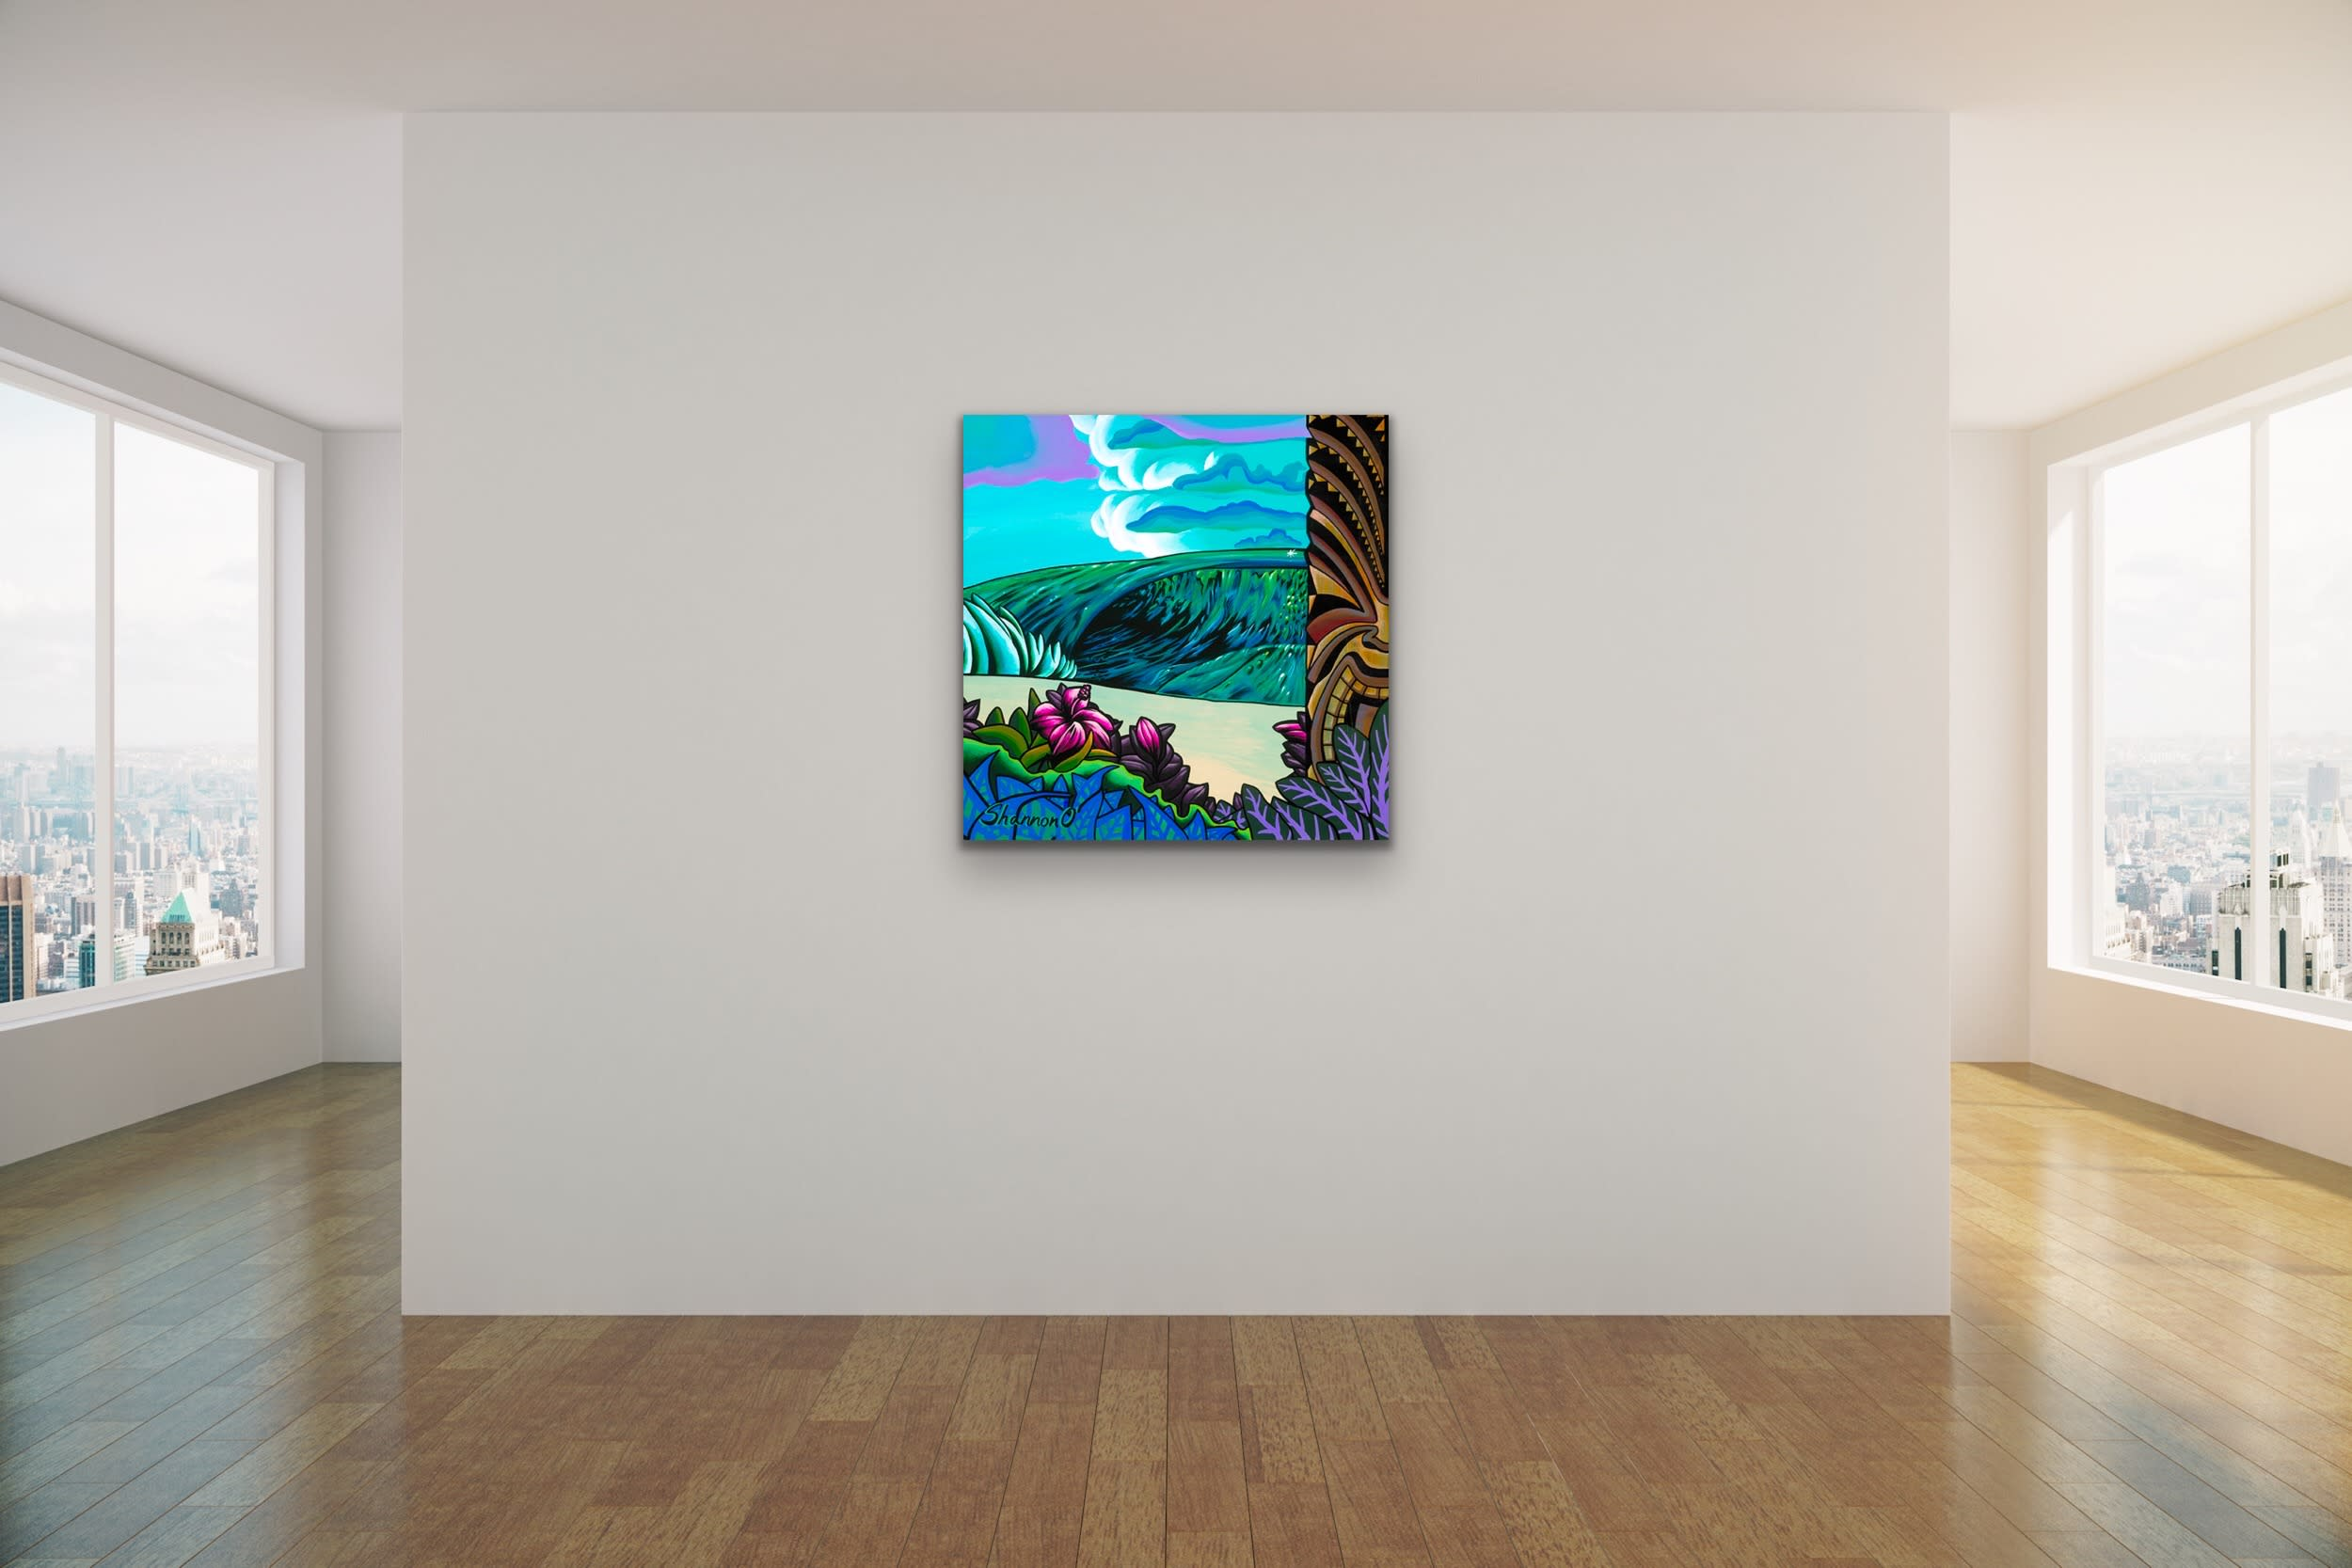 <div class='title'>           Shannon Oconnell Paintings Mock Ups Evo Art Maui Lahain Front Street Gallery Collect Popular Colorful Ocean Flowers Scenery Waves 27         </div>